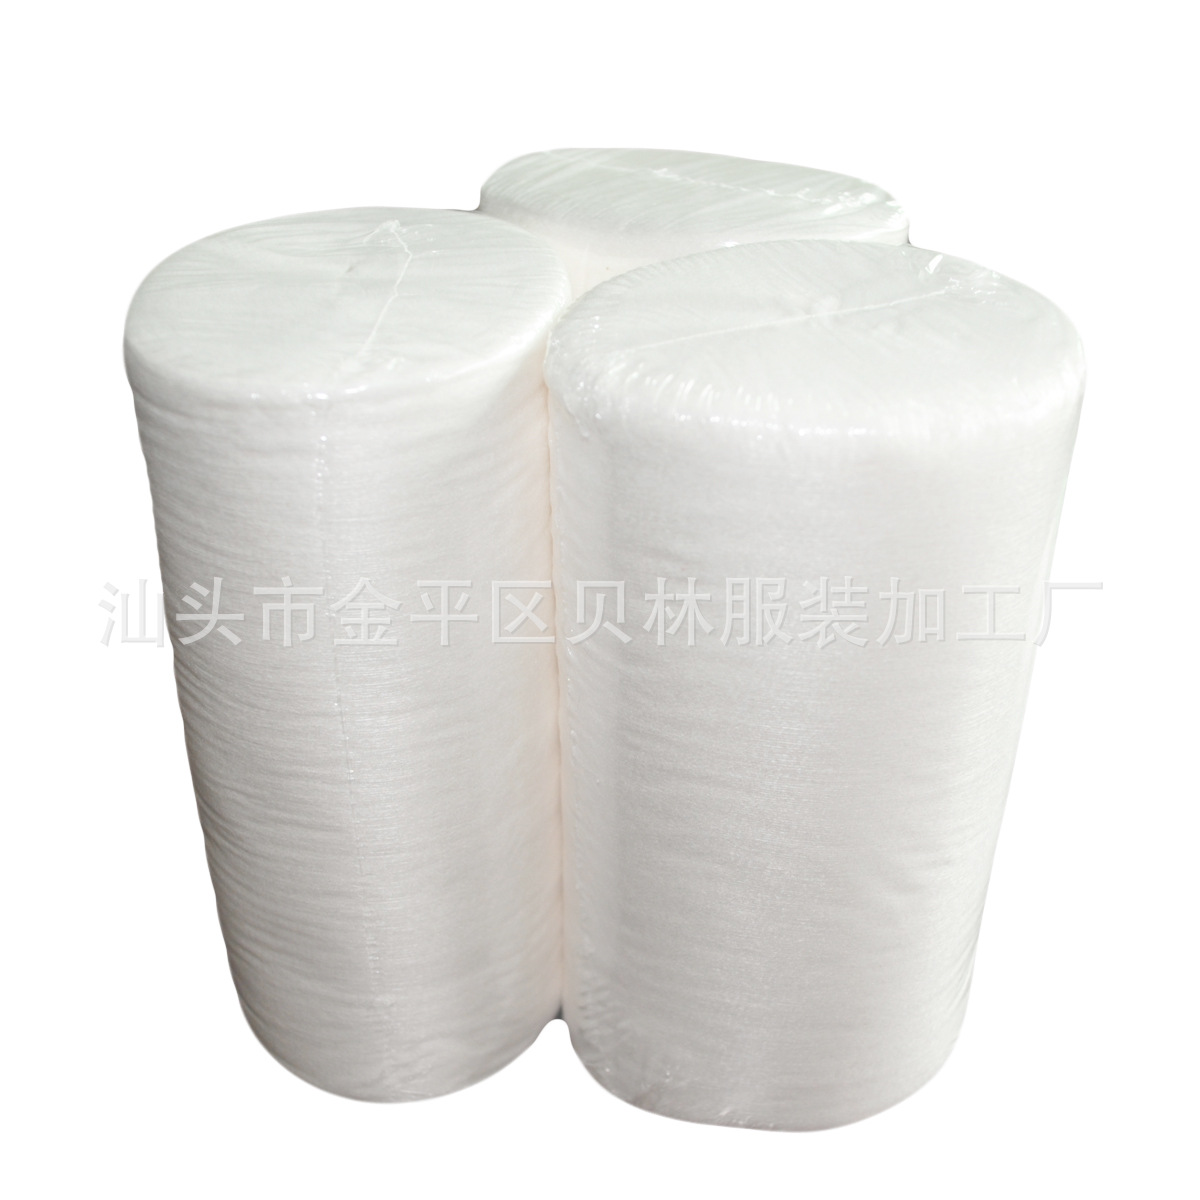 Manufacturers Direct Selling Urine Pad Infant Urine Filter Tissue Separated Diaper Ge Niao Zhi Disposable Waterproof Towel 100 P